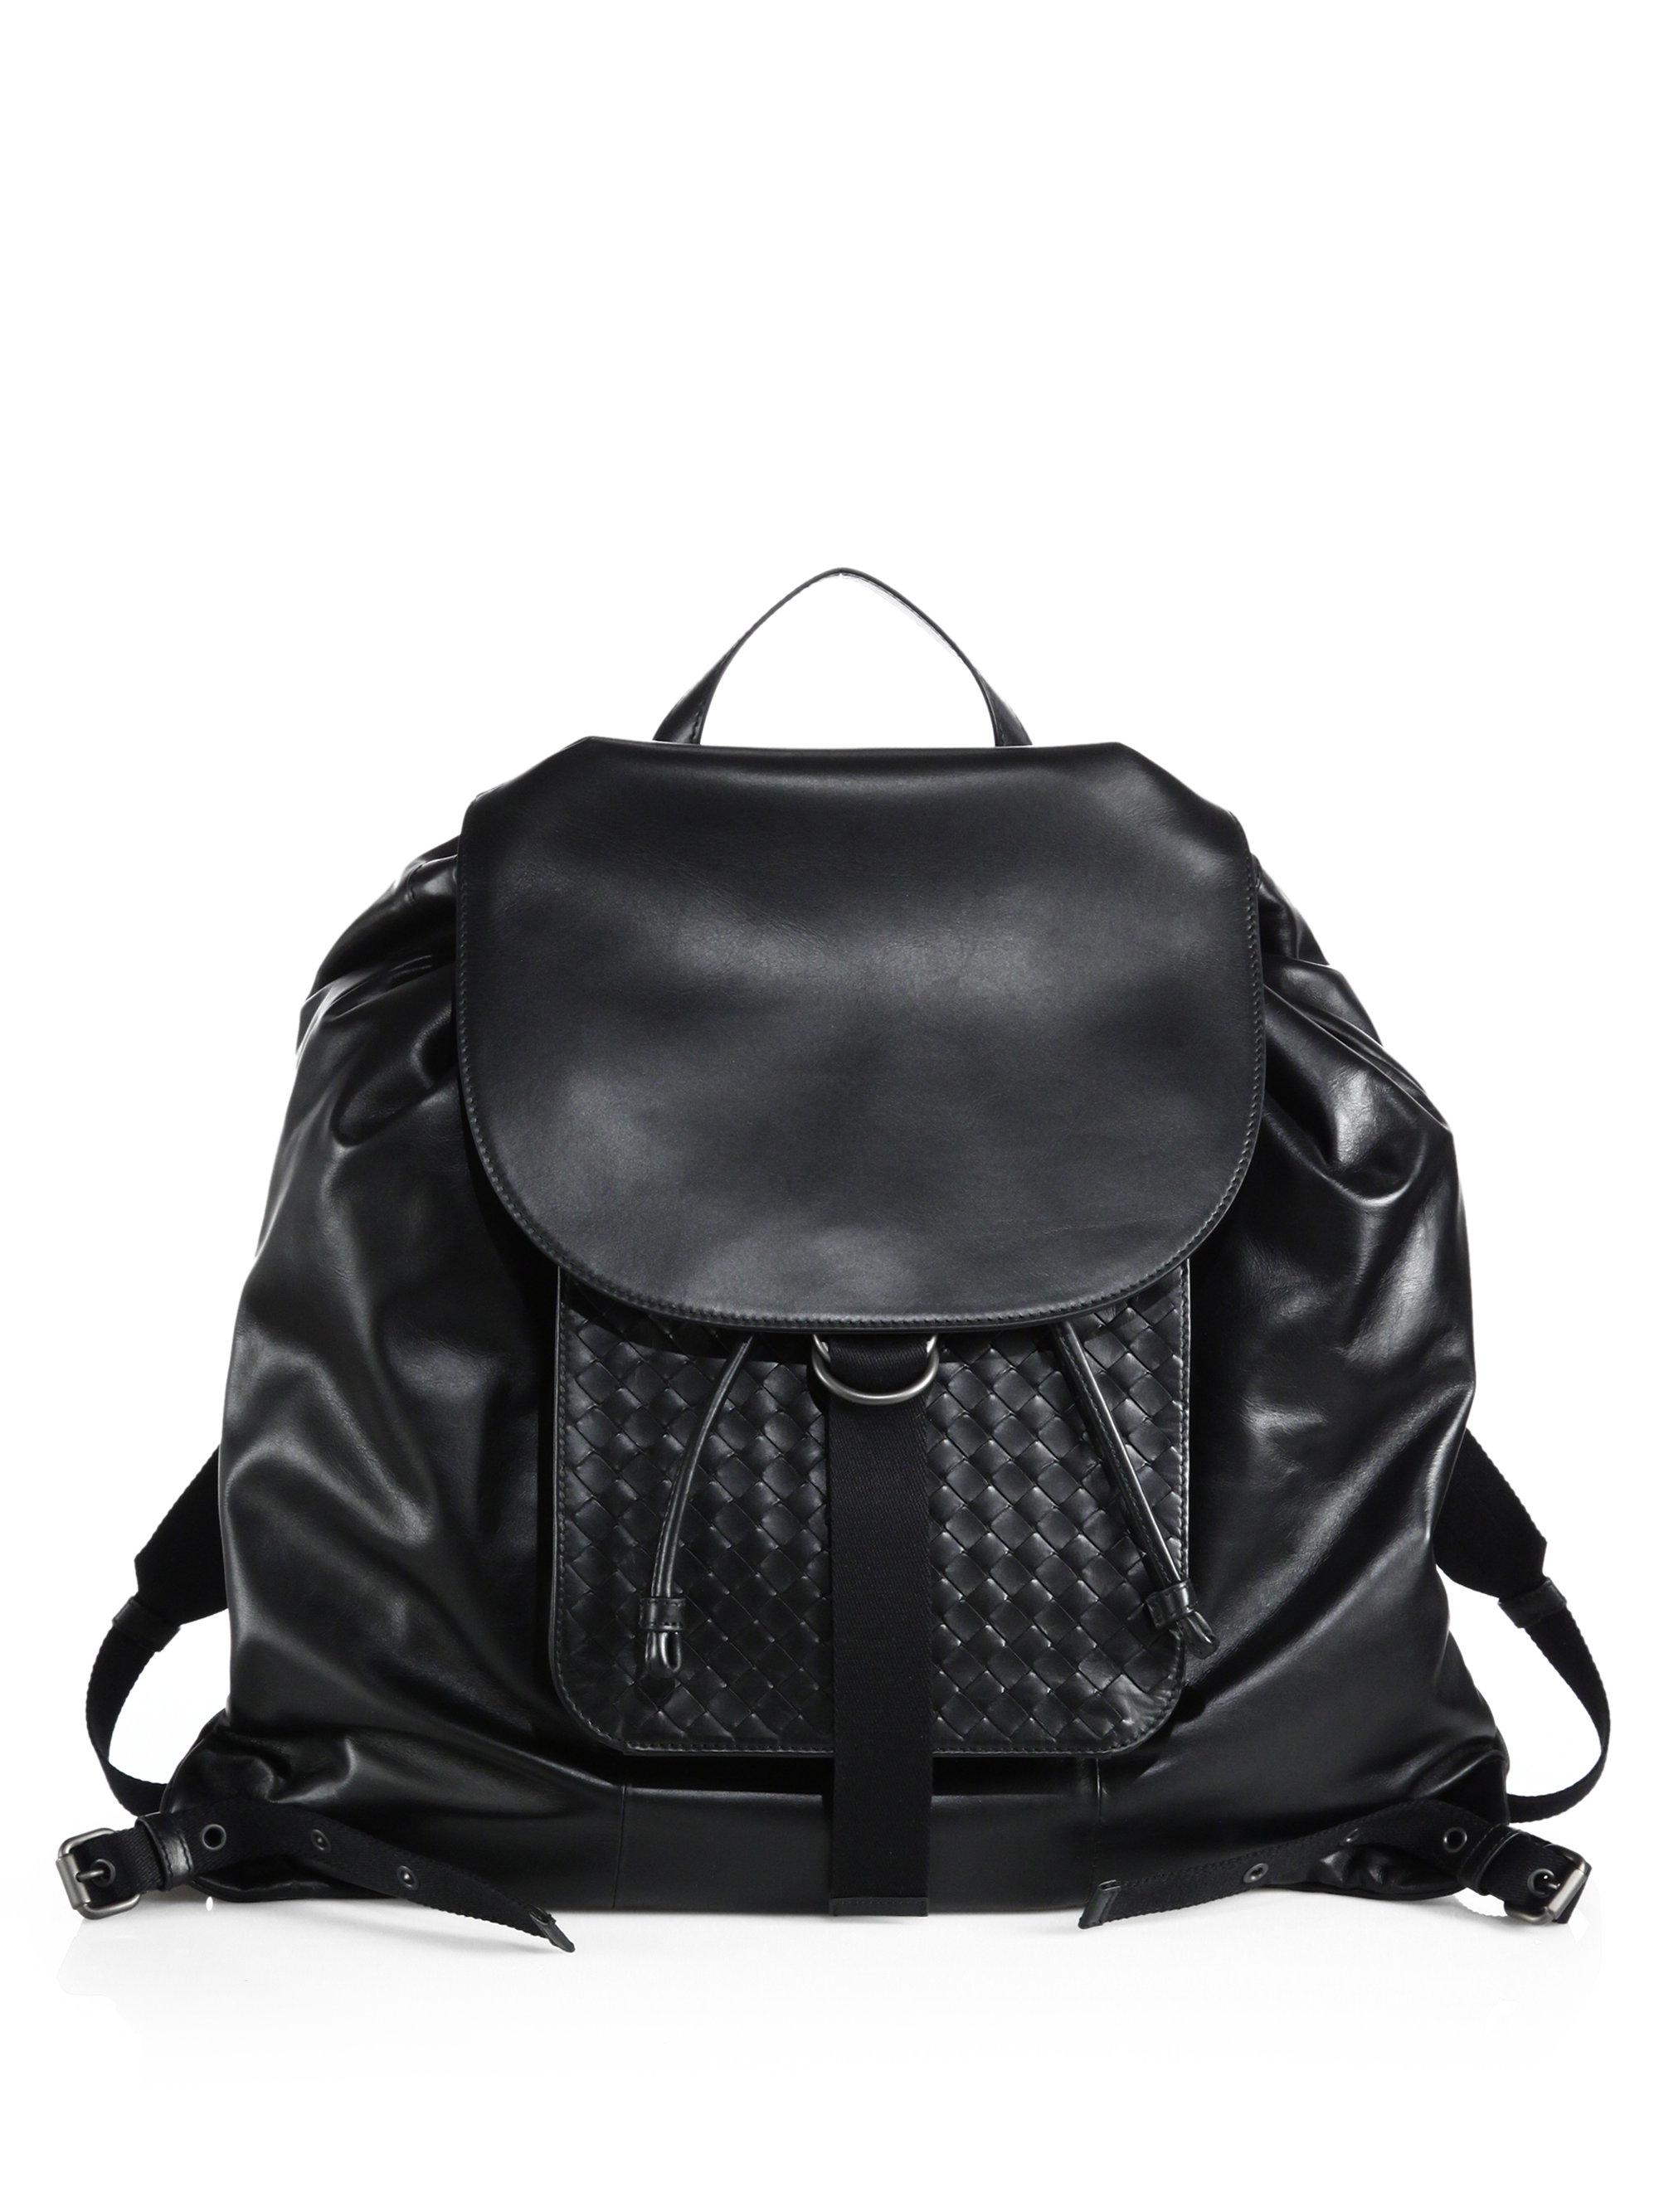 9be173d4a9 Lyst - Bottega Veneta Leather Drawstring Backpack in Black for Men